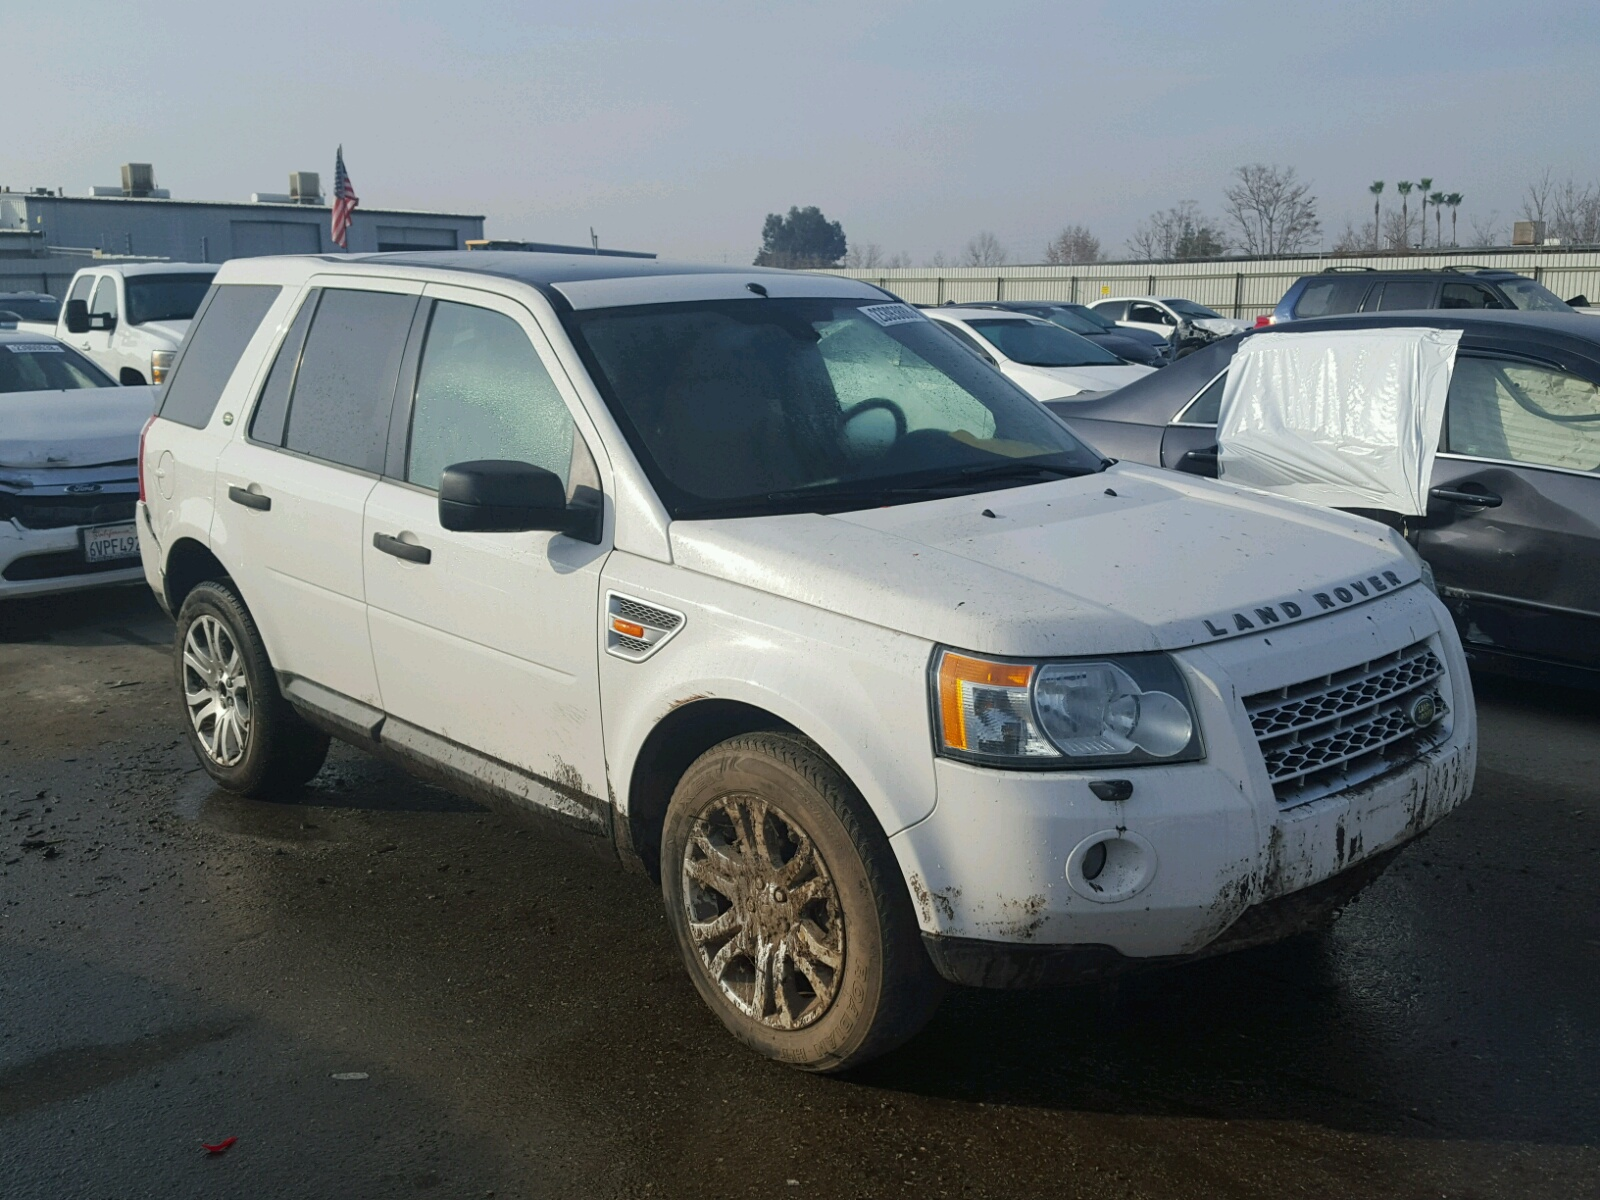 auctions white land sale salvaged title carfinder view cert in rover landrover en se ms online on copart auto right of lot for jackson